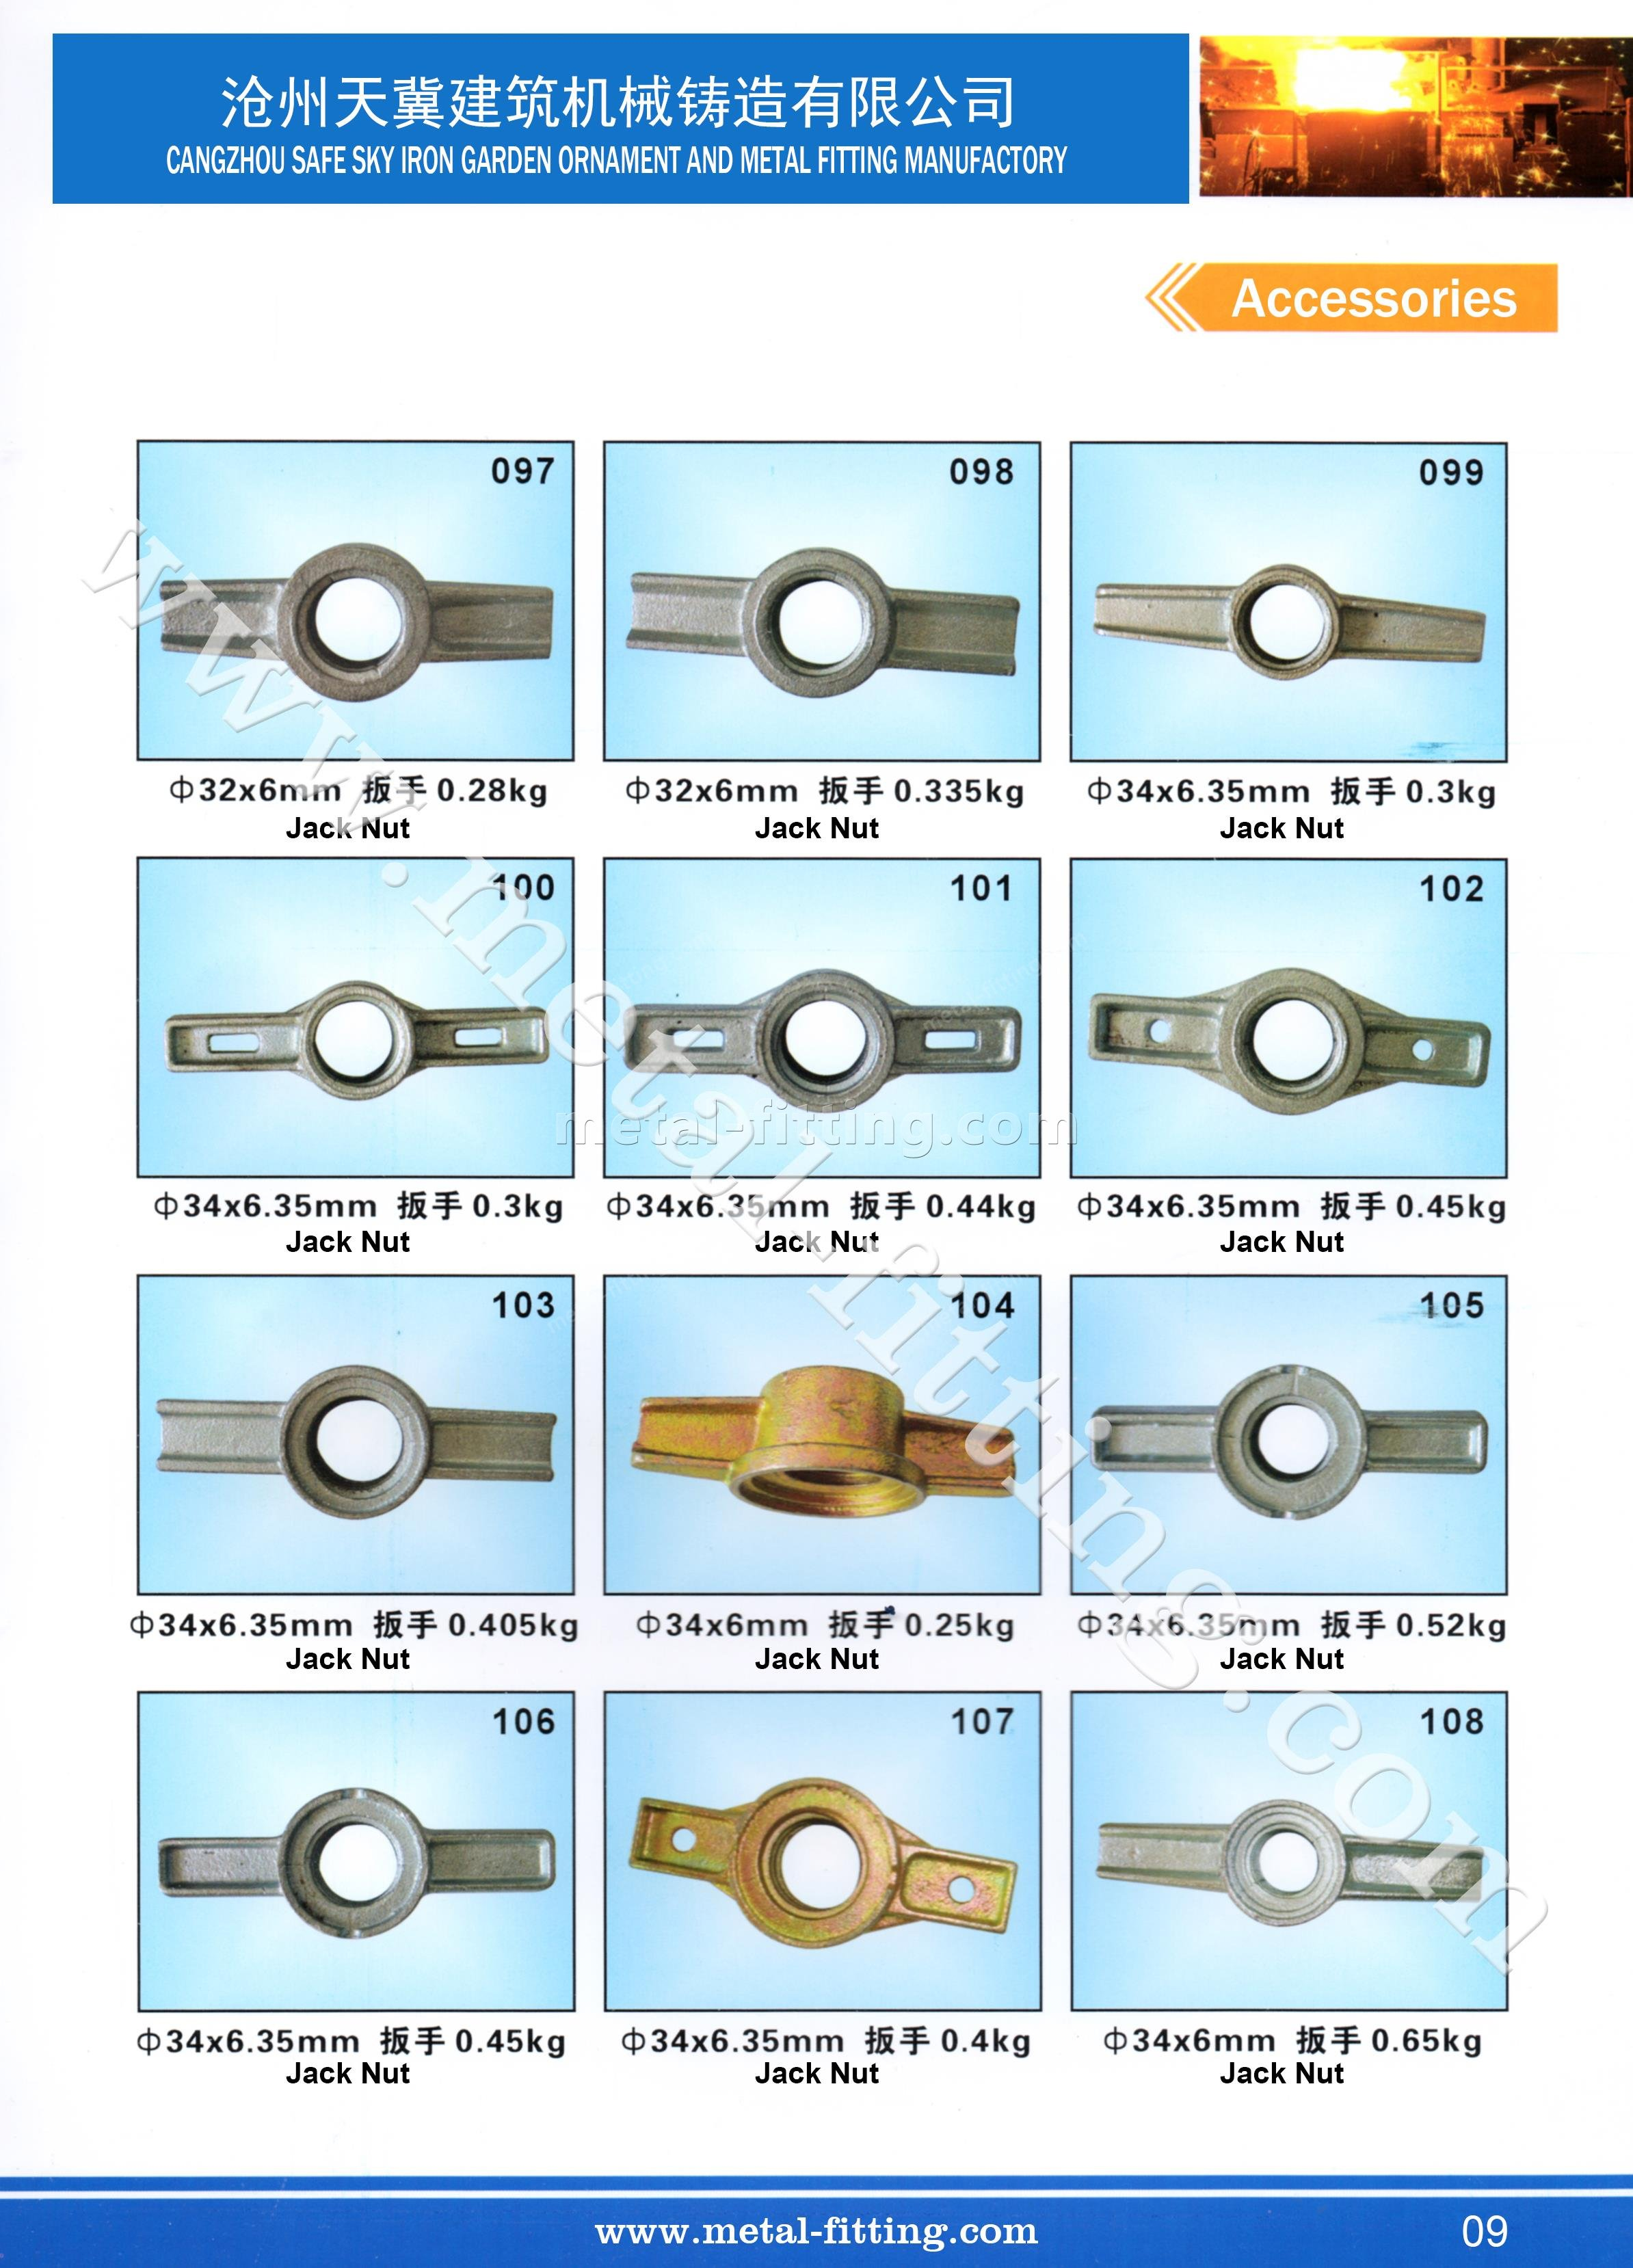 casting steel metal fitting, scaffolding system-9